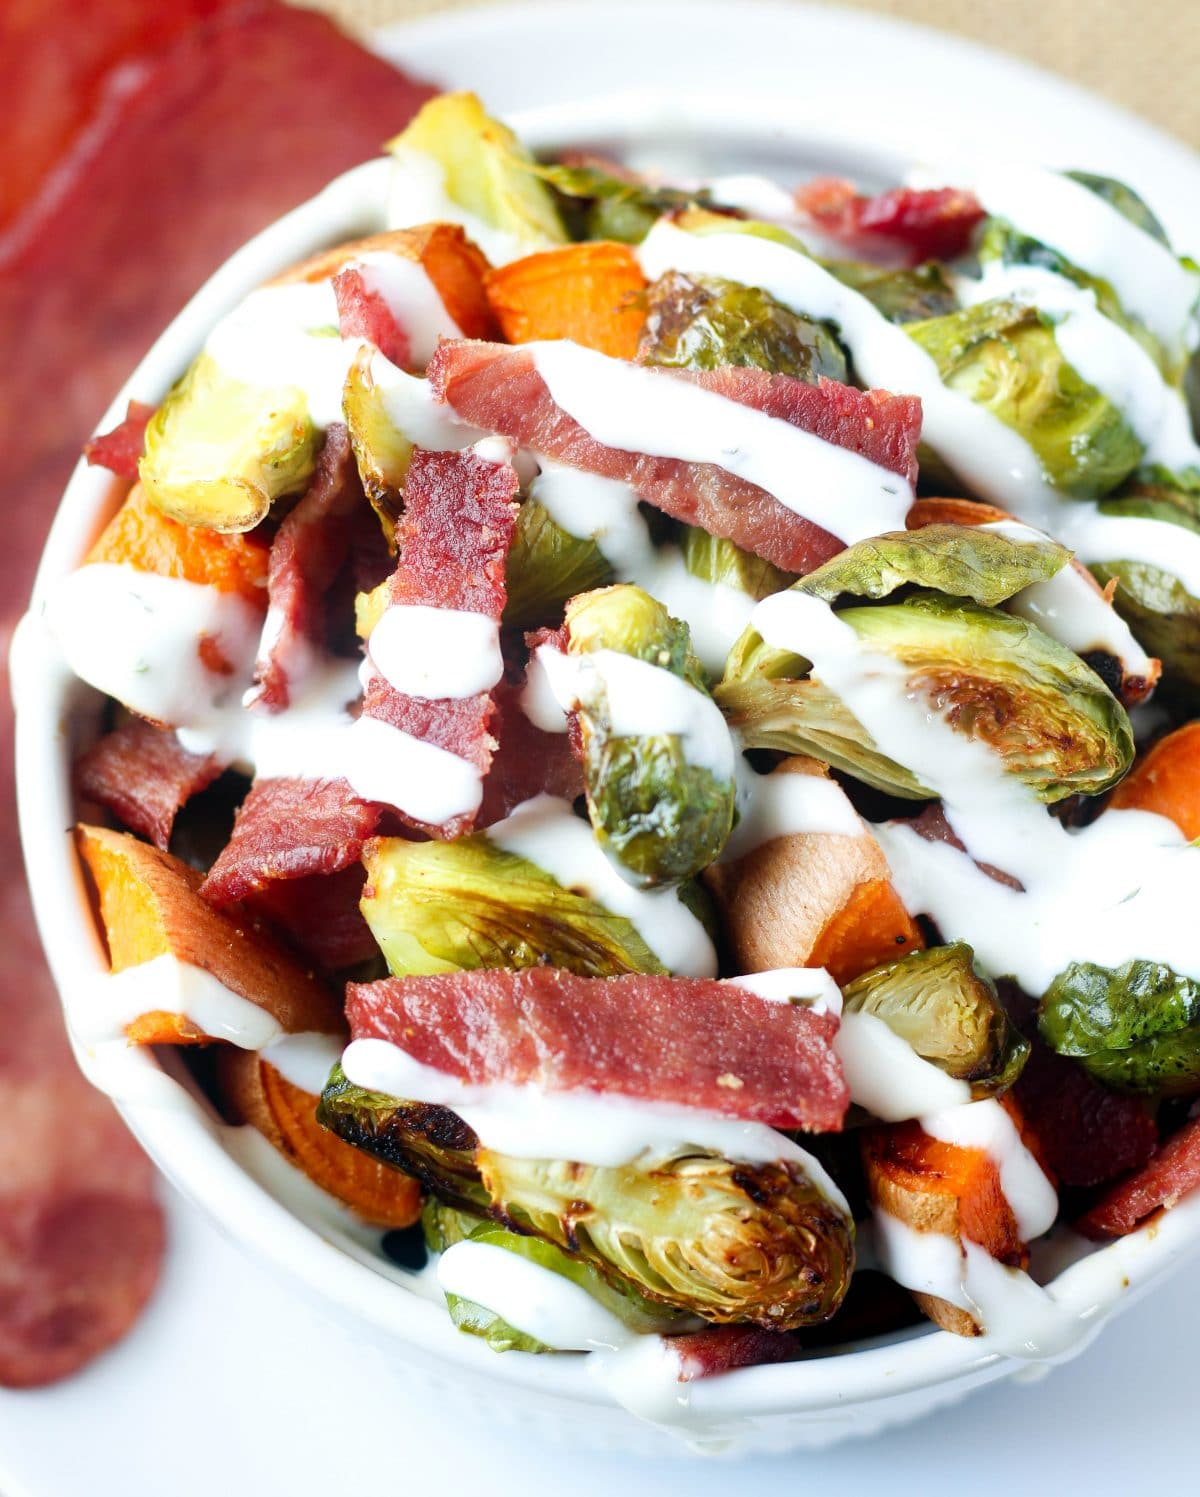 turkey-bacon-ranch-bowls-image